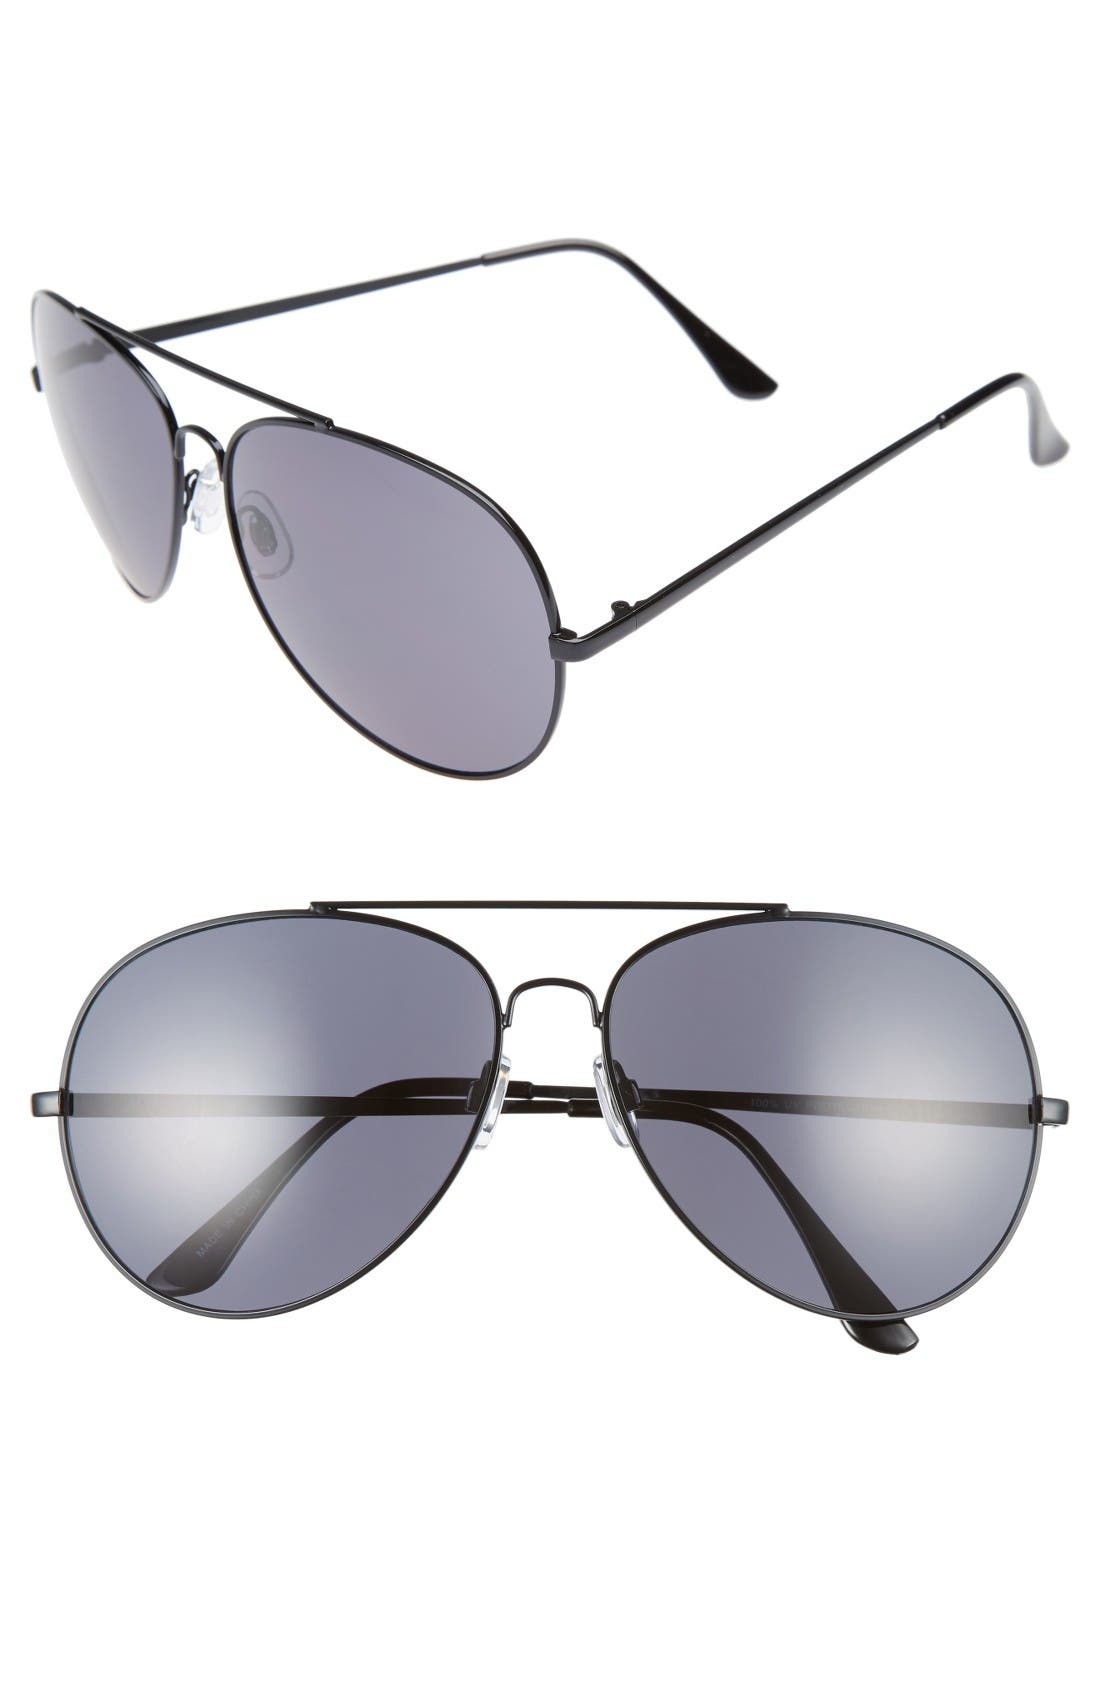 Main Image - BP. 65mm Oversize Aviator Sunglasses